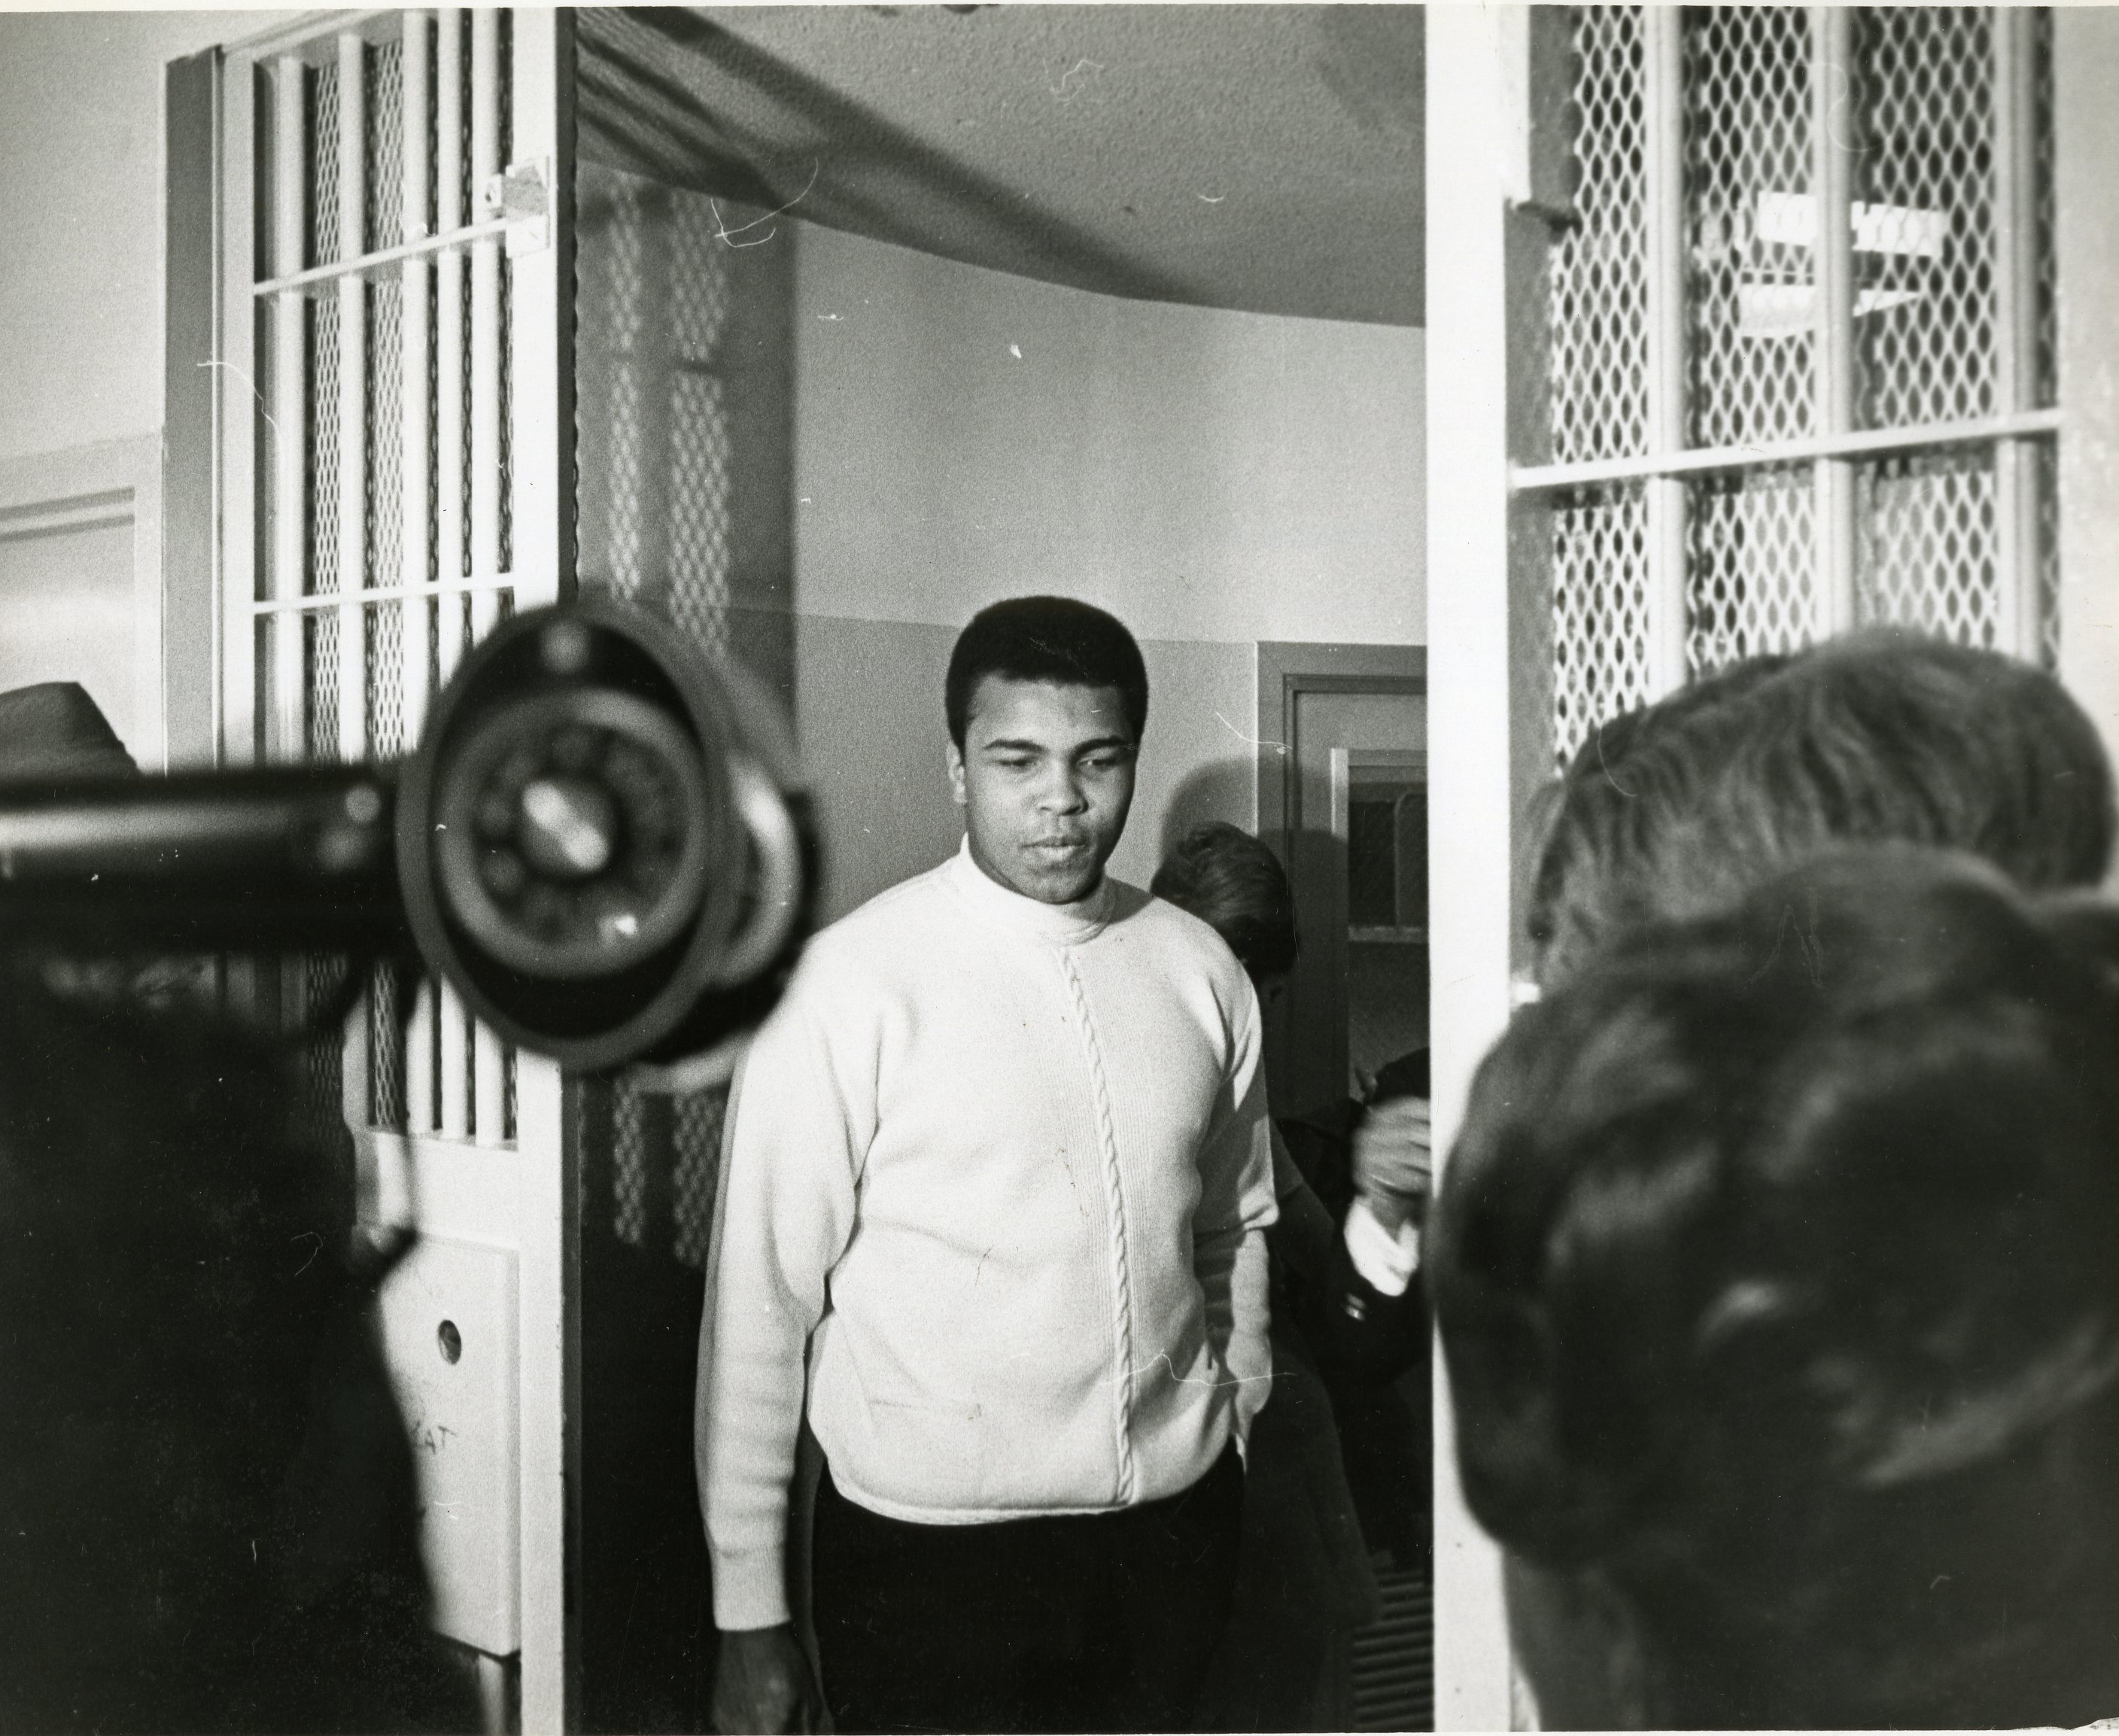 Dec. 12, 1968 - Florida, U.S. - December 12, 1968: Muhammad Ali at a Miami jail after being stopped on a traffic violation., Image: 256440678, License: Rights-managed, Restrictions: * Florida Sun Sentinel Rights OUT *, Model Release: no, Credit line: Profimedia, Zuma Press - News